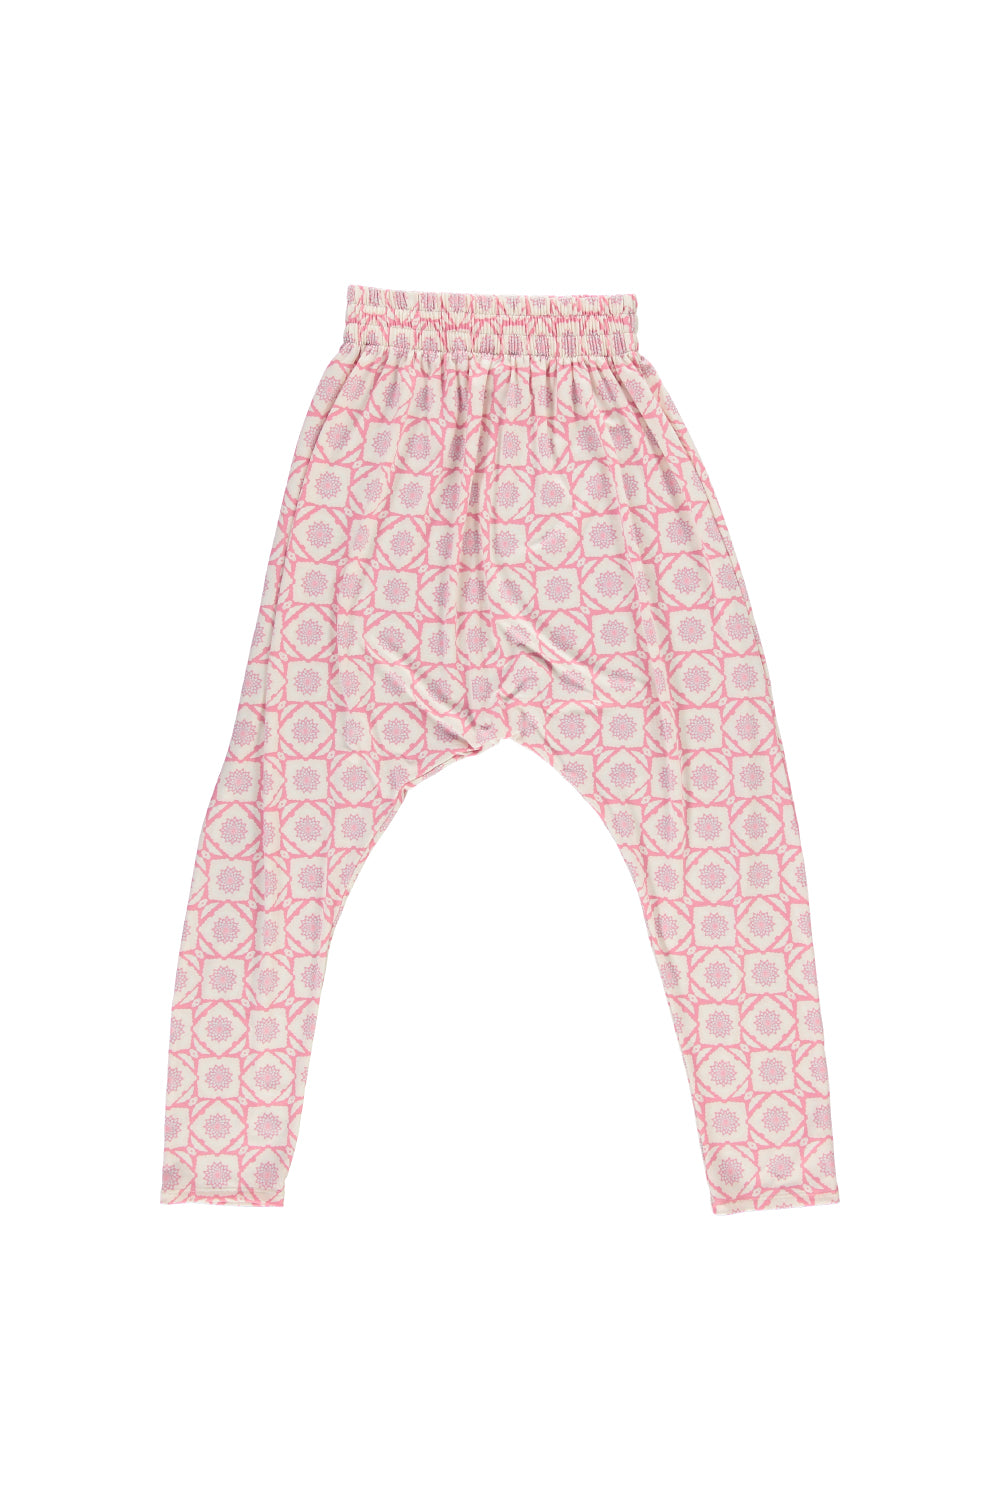 Women's Harem Pants - Lotus